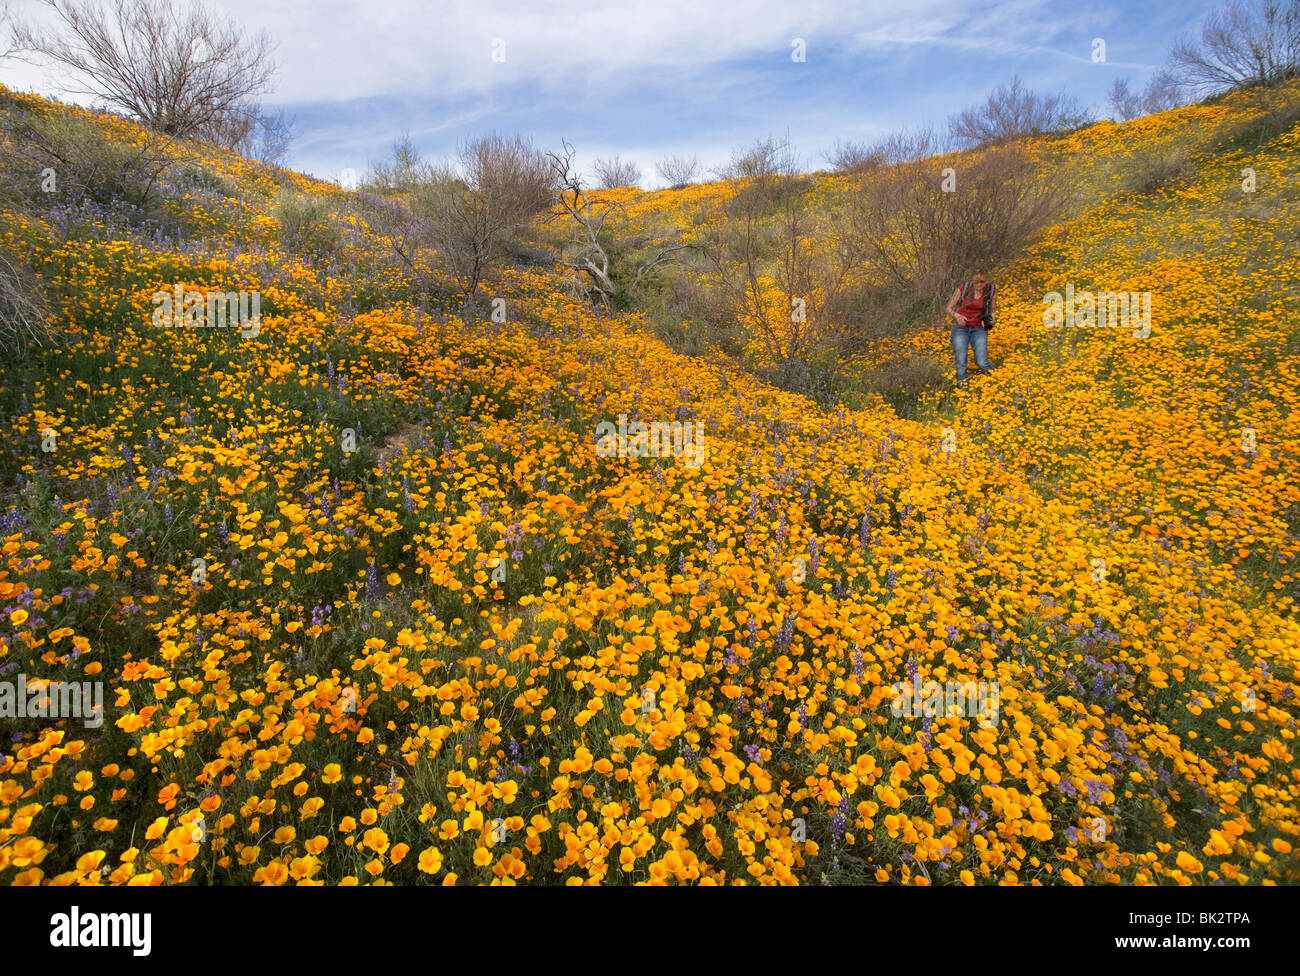 A large field of orange and yellow poppies and wildflowers that goes on forever. A woman photographer walks among - Stock Image